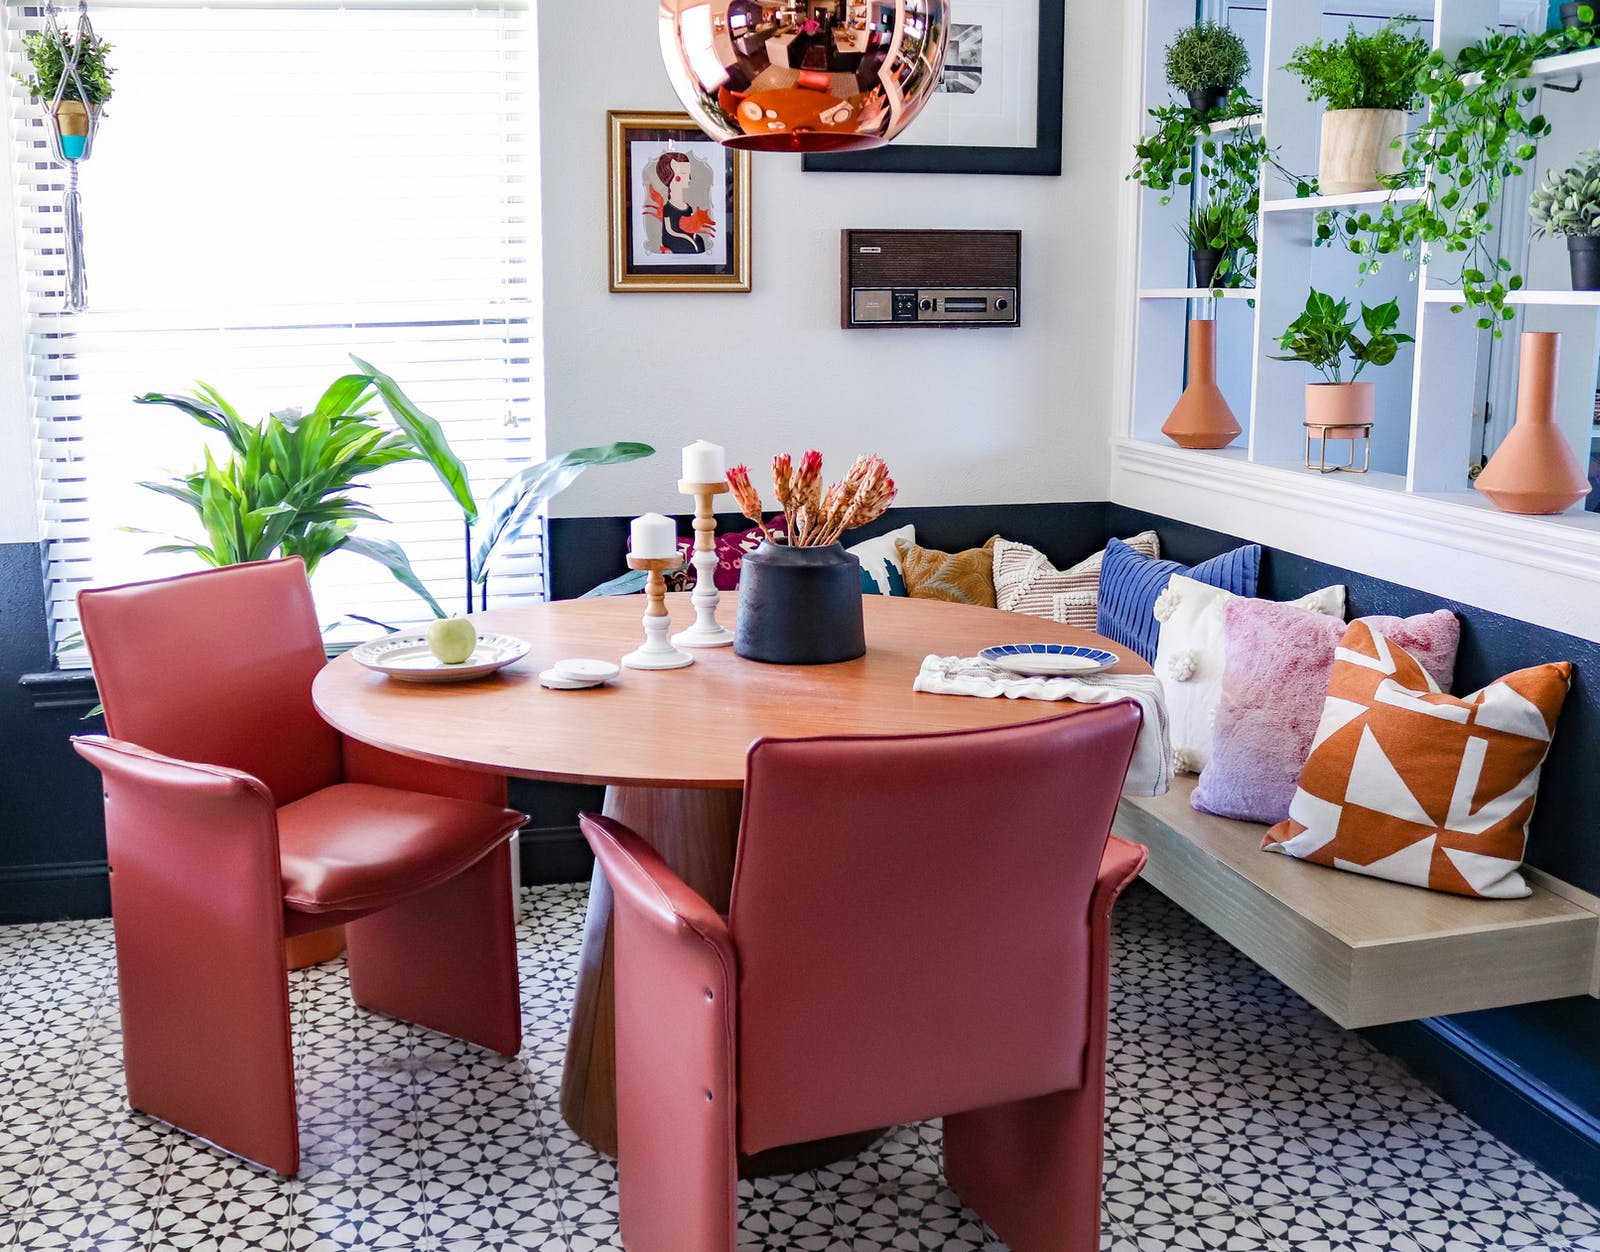 Image of retro dining room area with terracotta chairs, a fish bowl hanging light and various plants